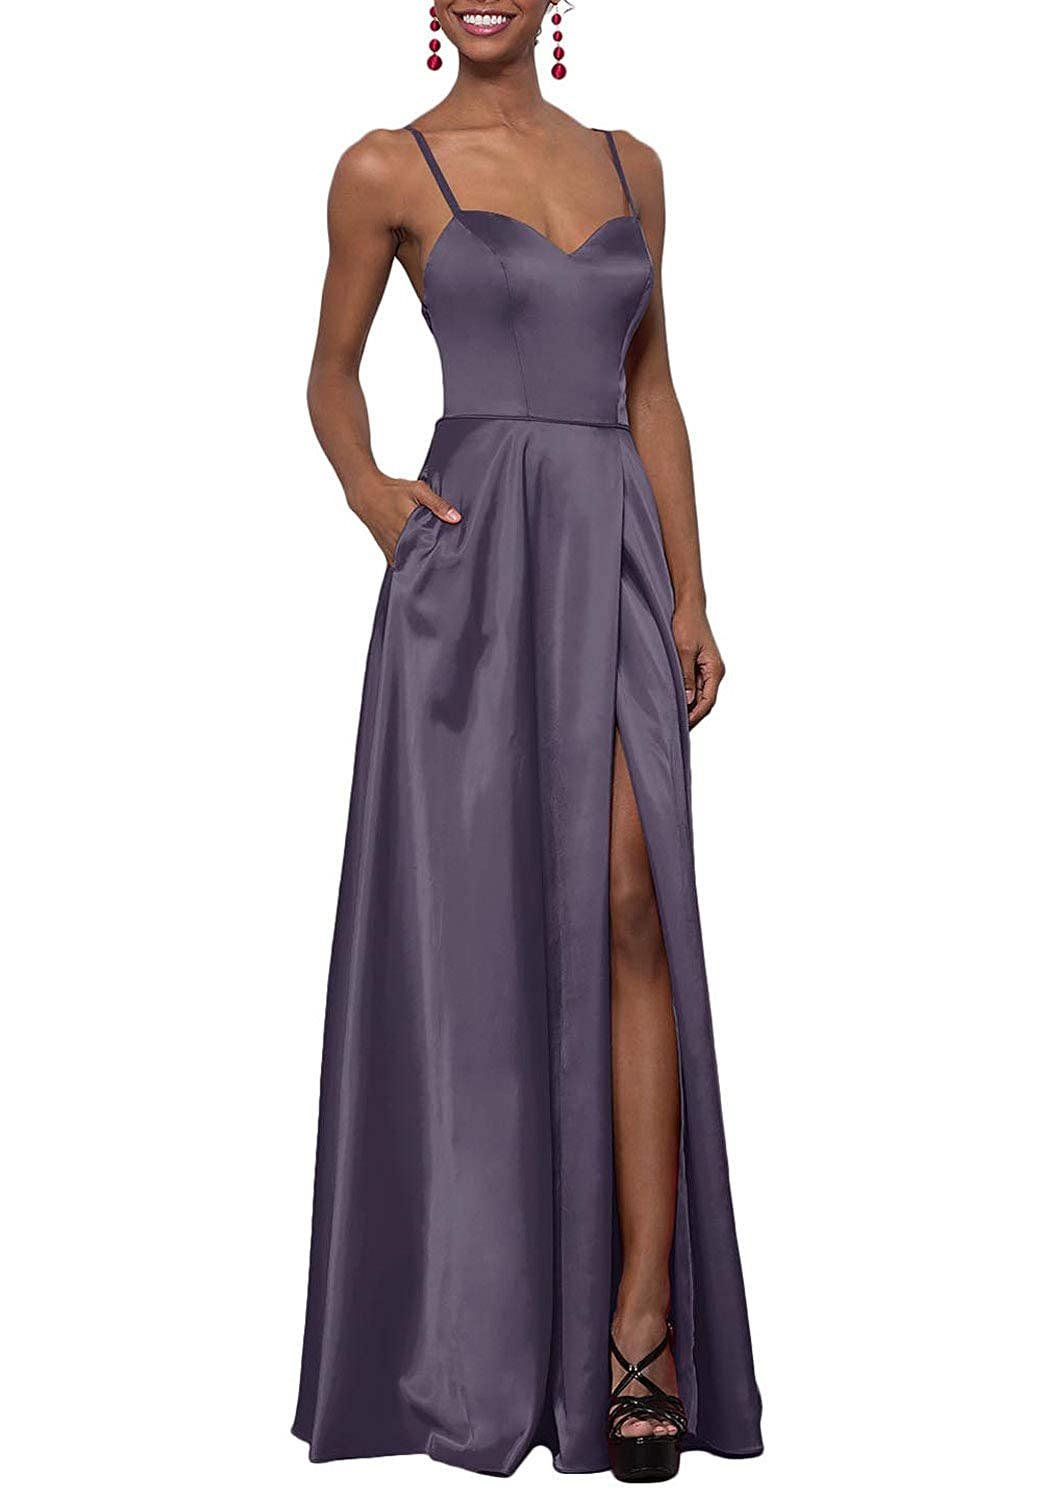 Mulled Grape YUSHENGSM Women's Sweetheart CorsetBack Satin Prom Dress Long Evening Party Gown Pockets